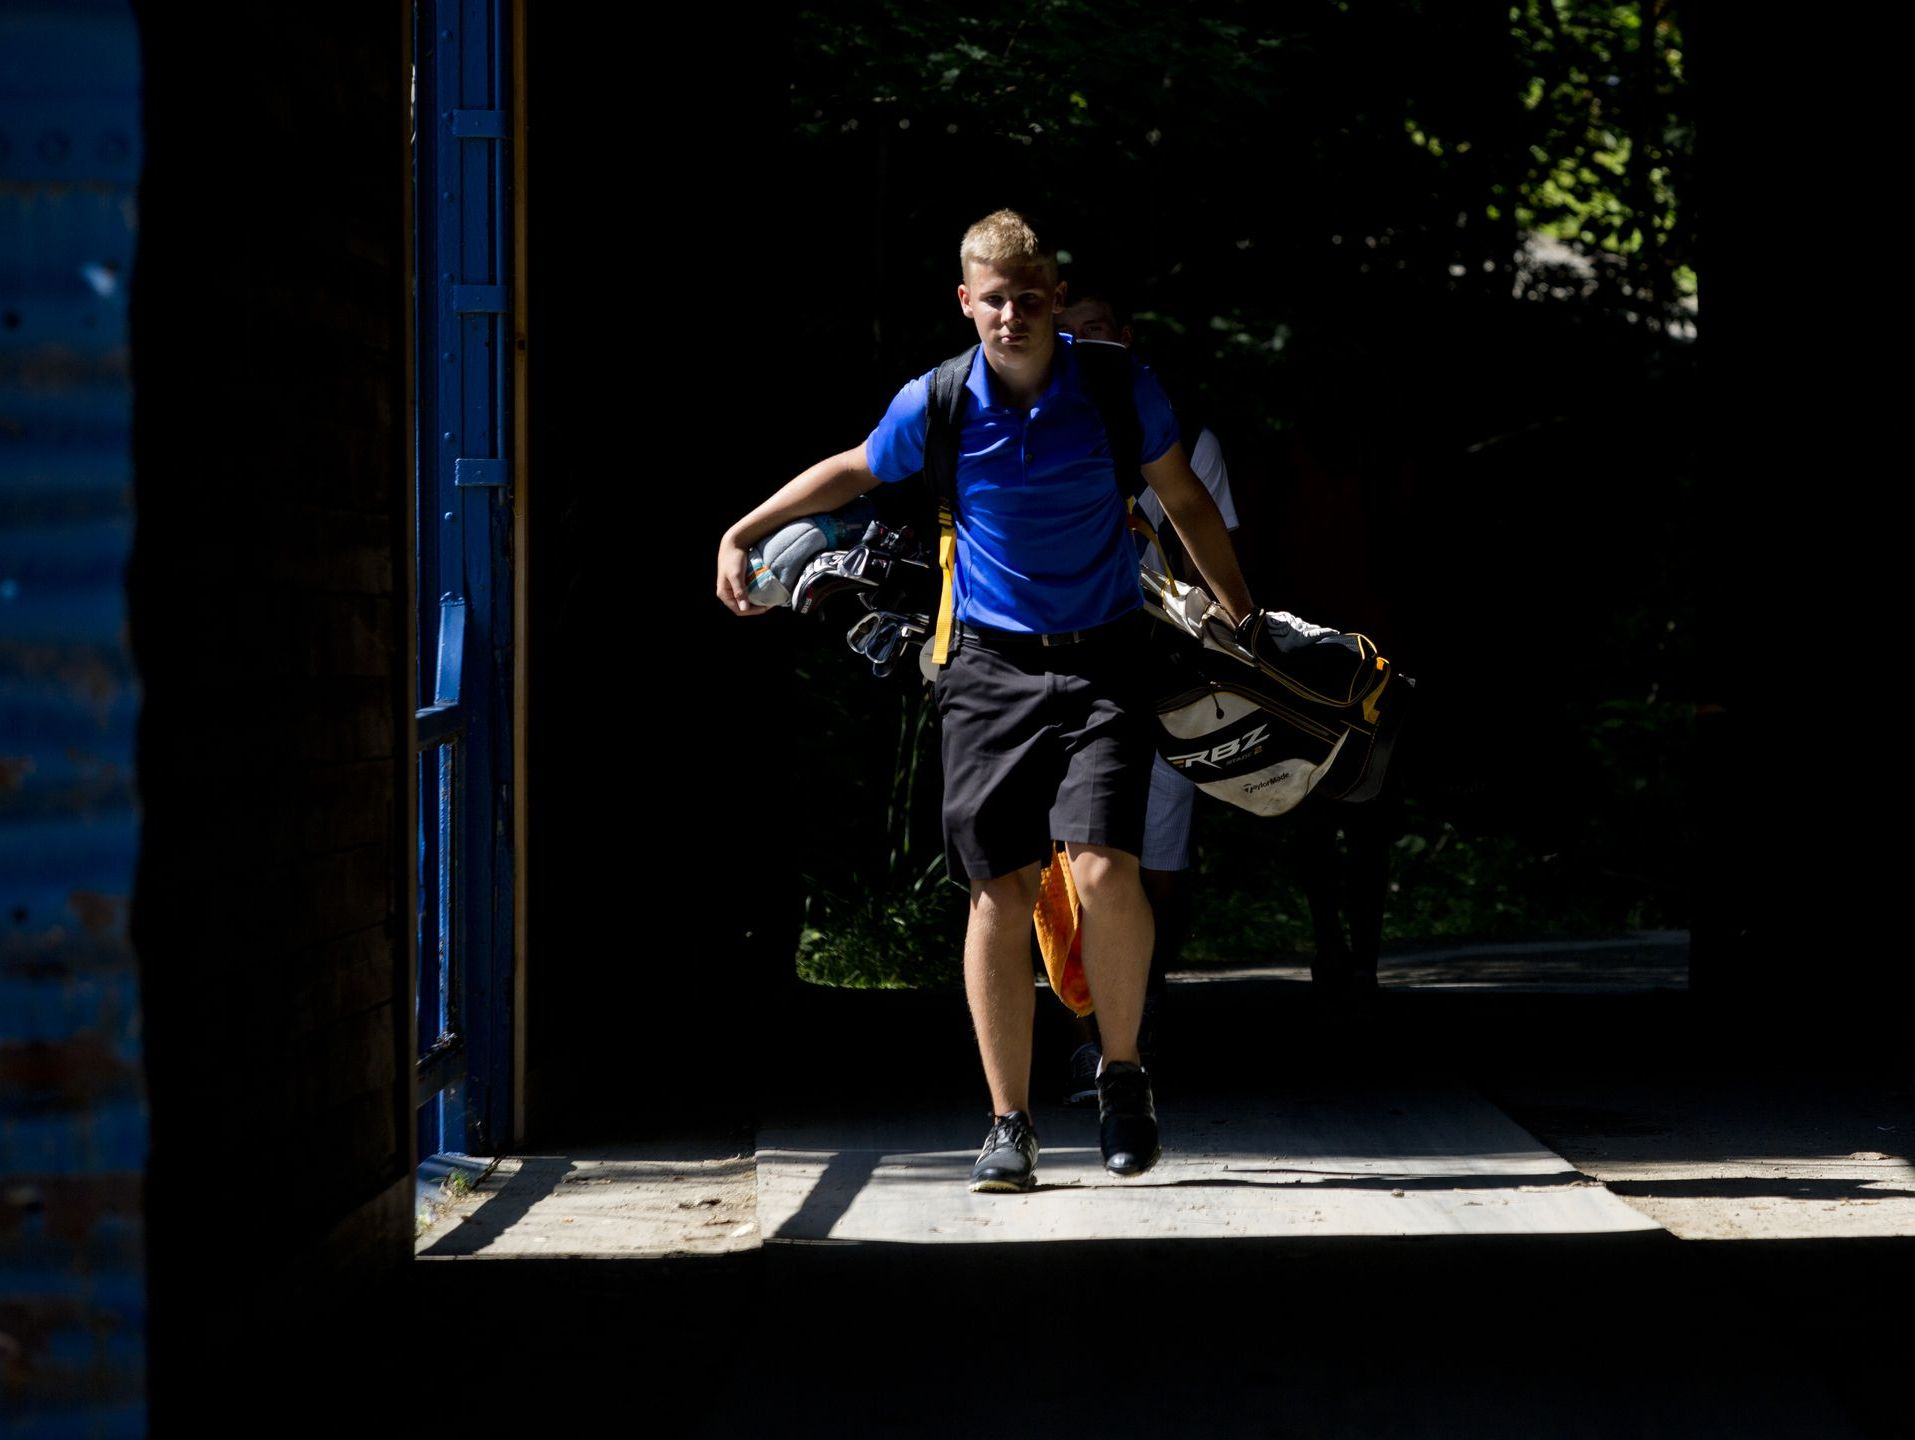 Nick Bailey of Port Huron, walks to the next hole during the Blue Water Junior Golf Association Tournament Thursday, July 30, 2015 at the Marysville Golf Course.